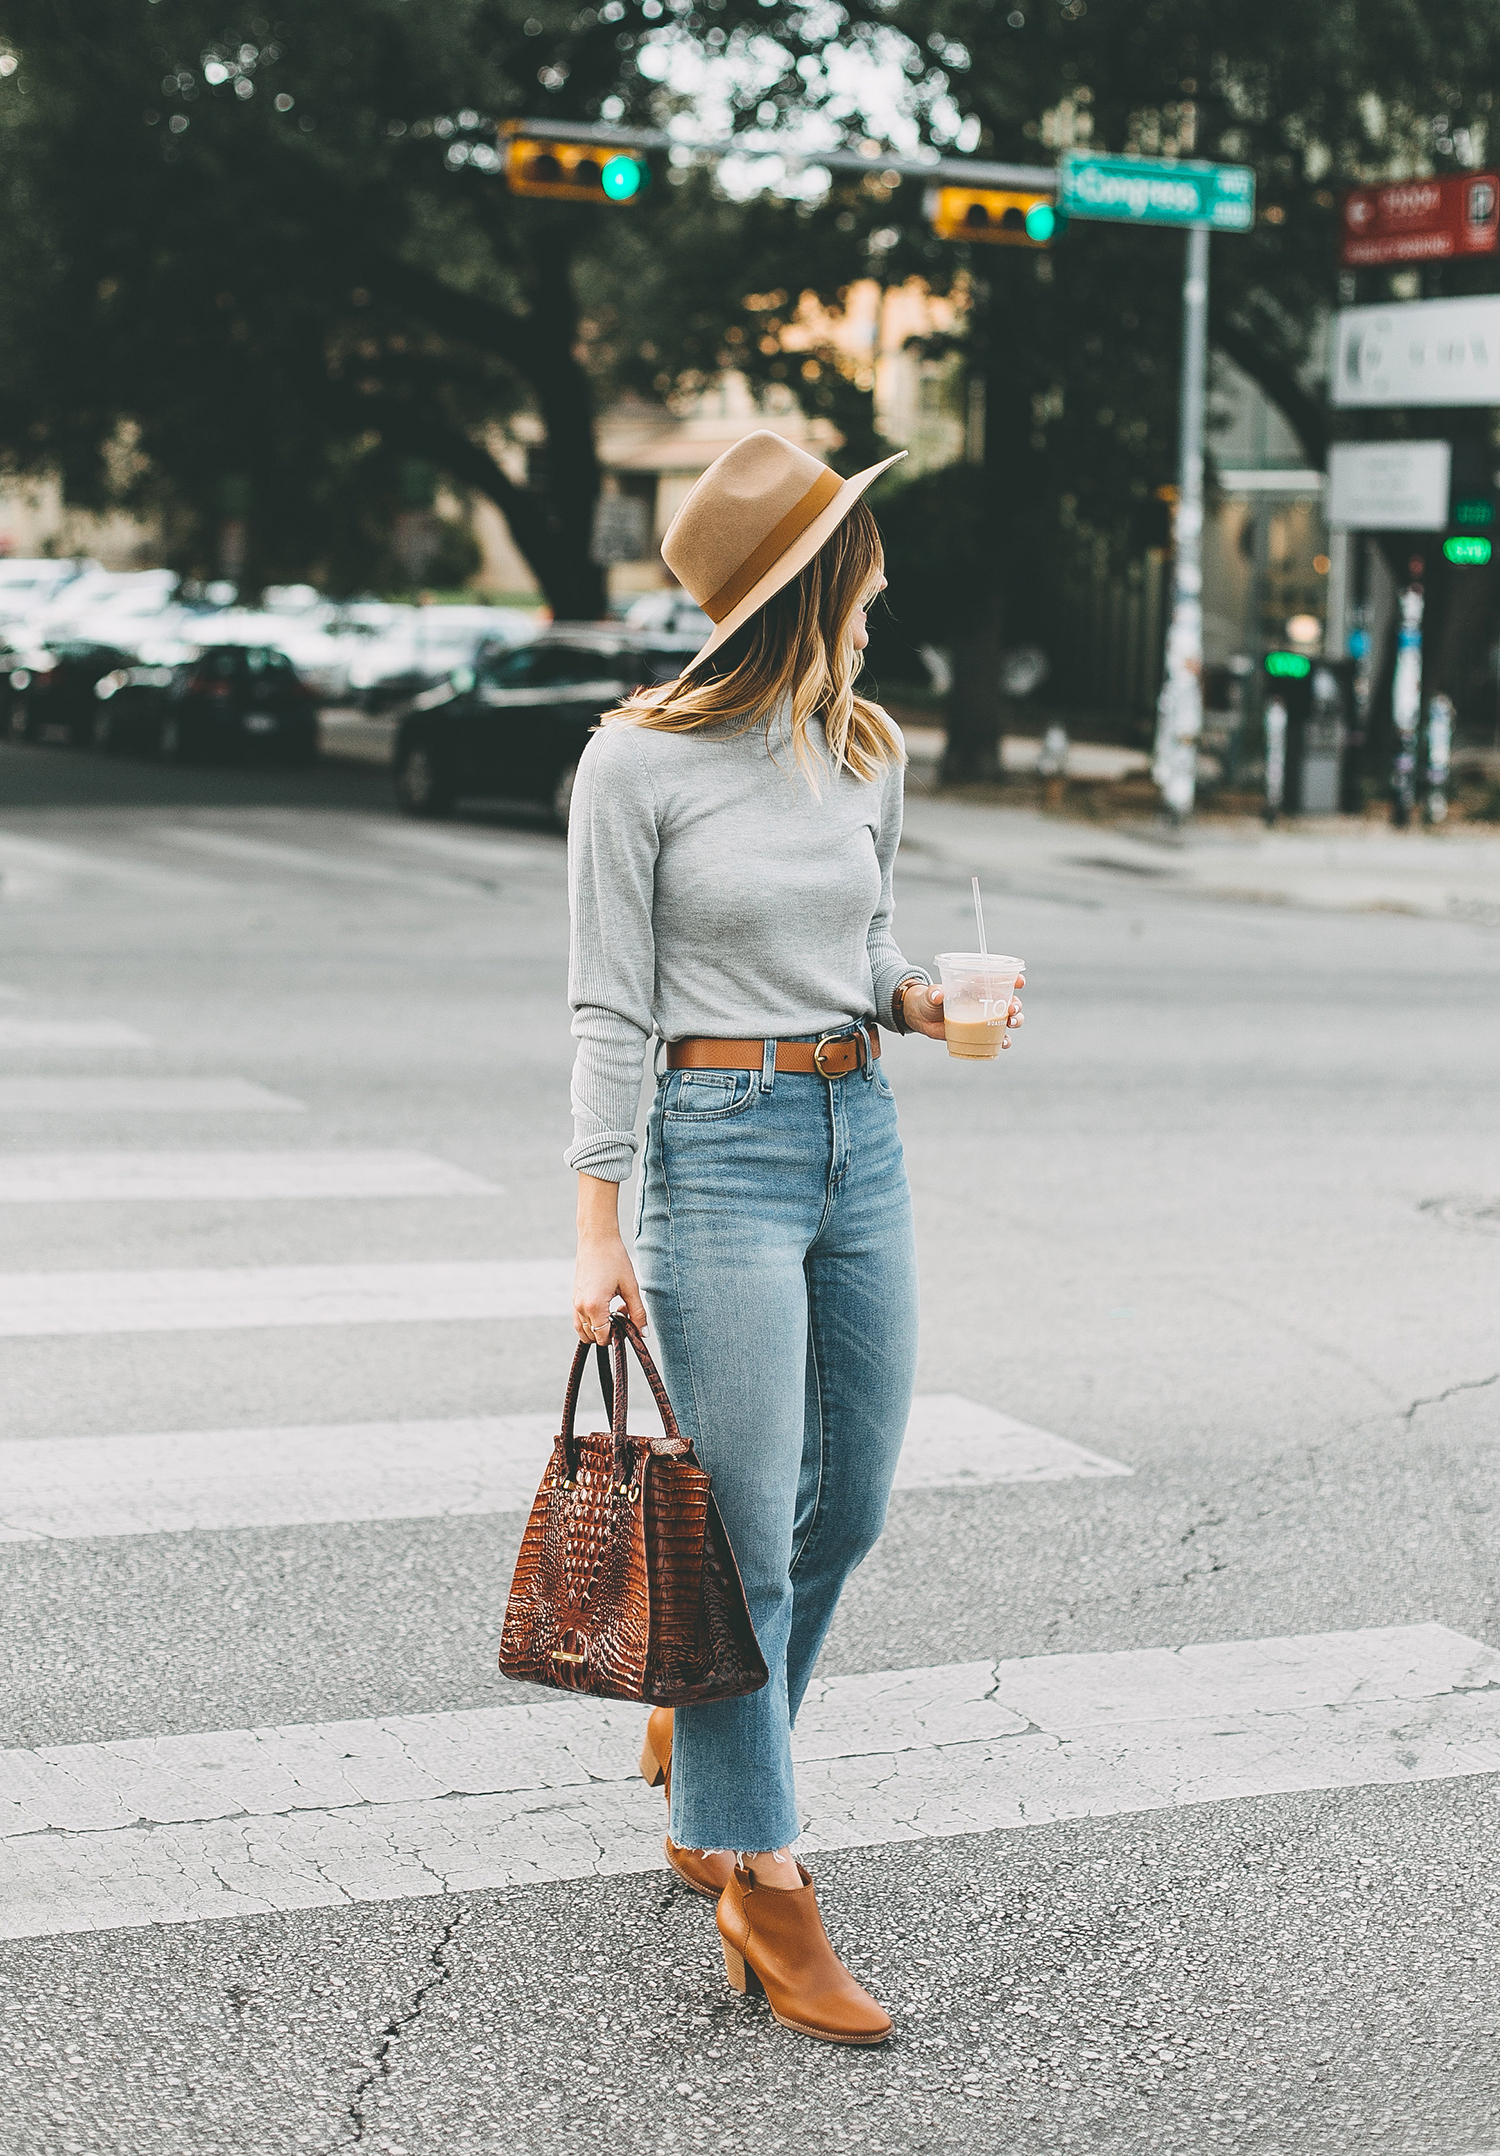 livvyland-blog-olivia-watson-south-congress-avenue-austin-texas-fashion-life-style-blogger-bdg-high-waist-crop-flare-jeans-3